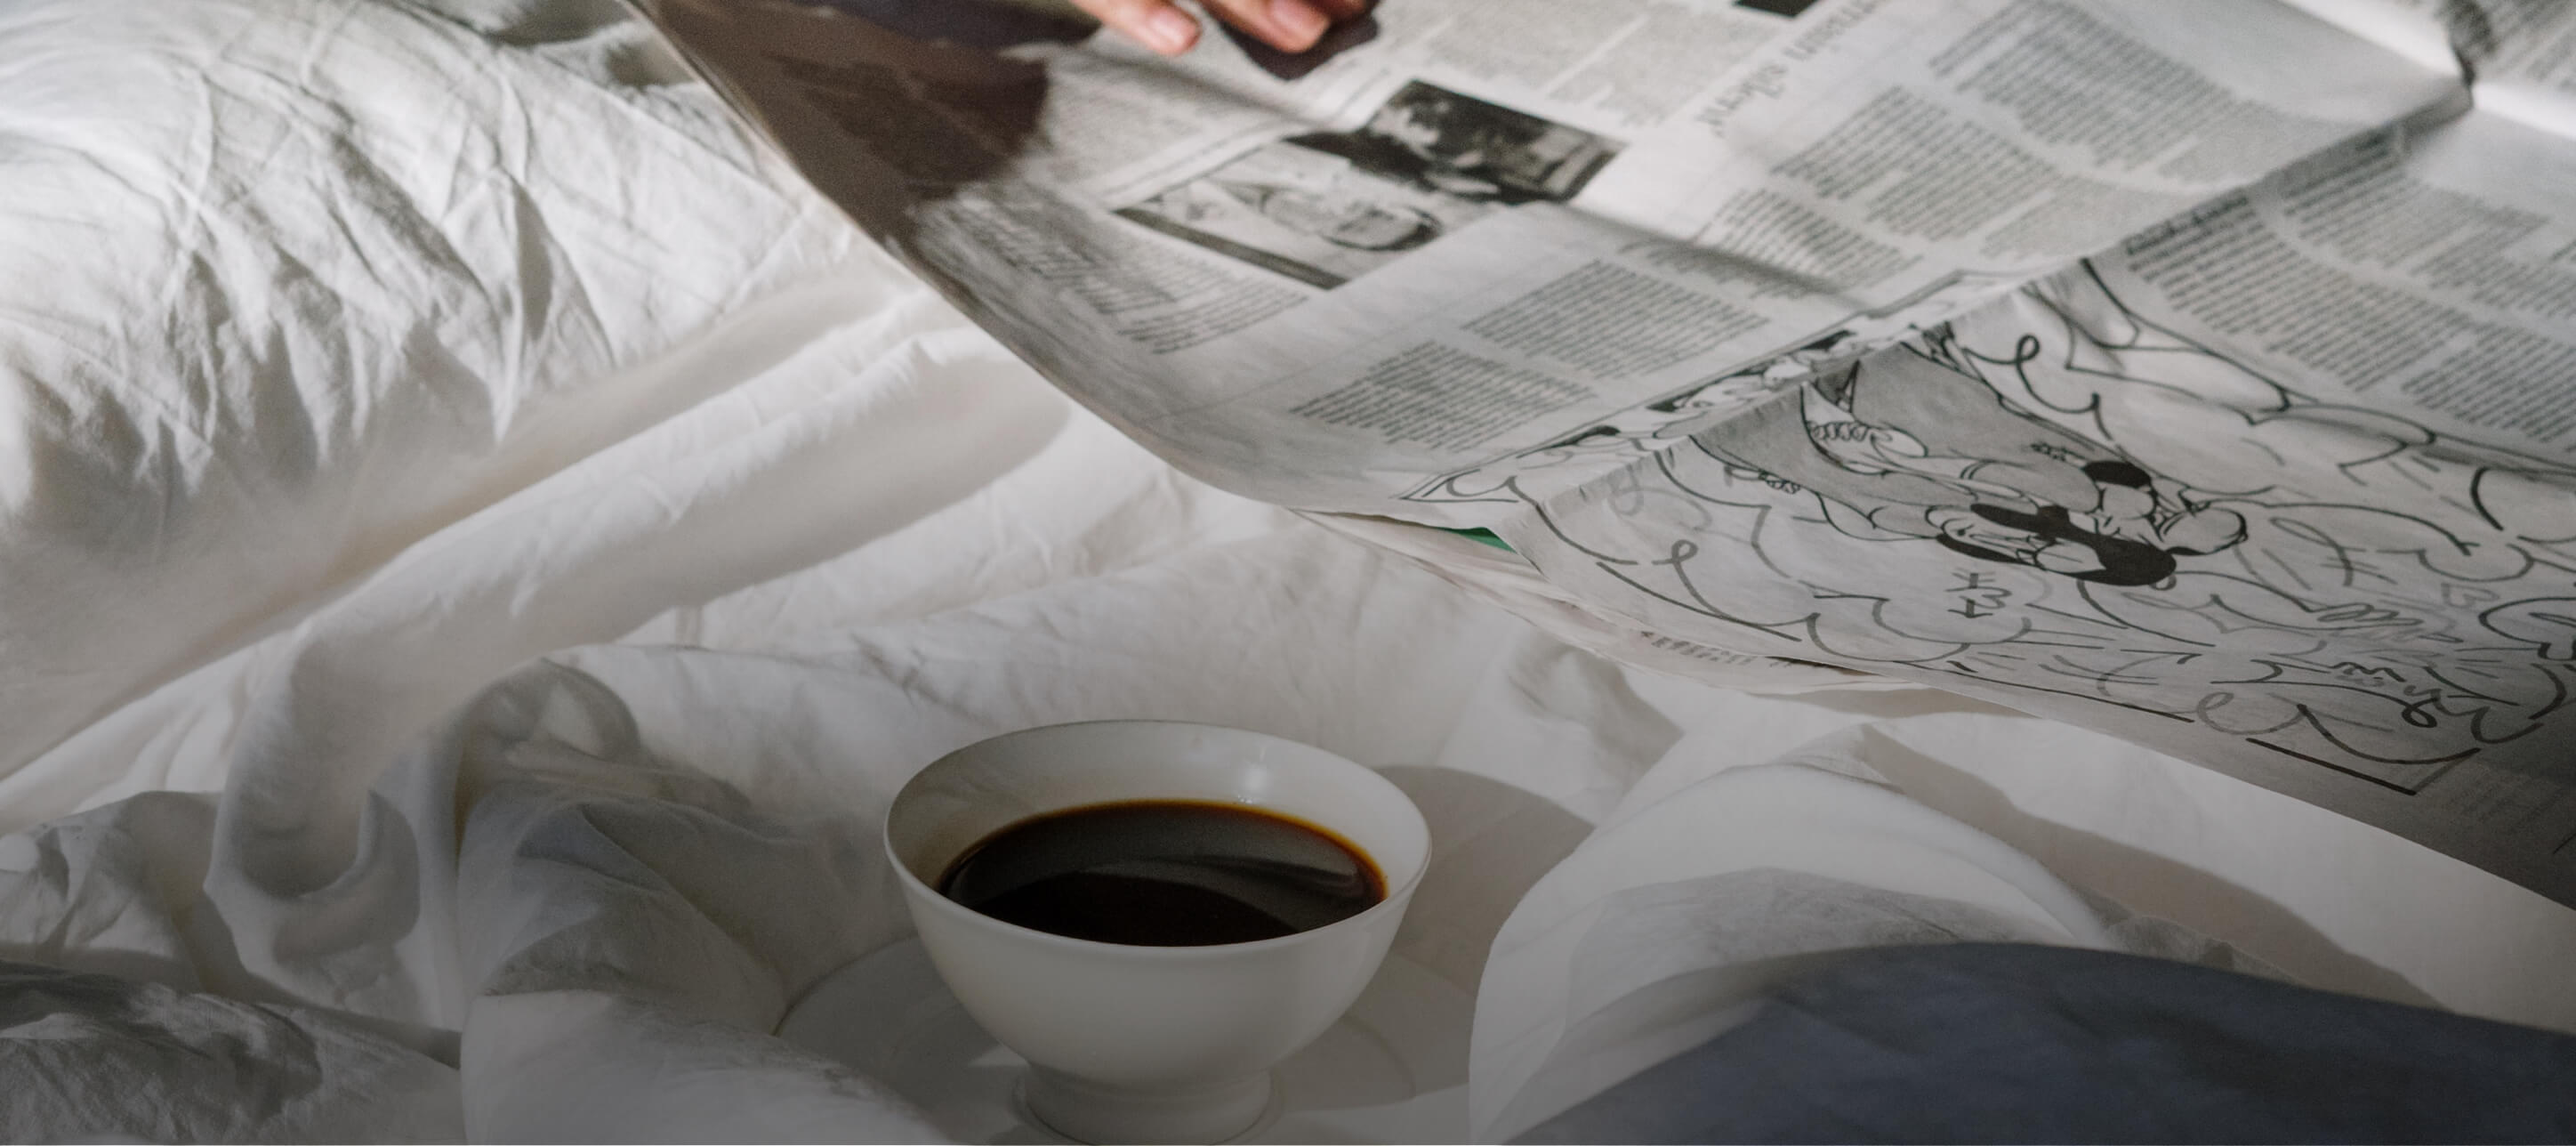 Mood image of reading newspaper in bed with cup of tea.